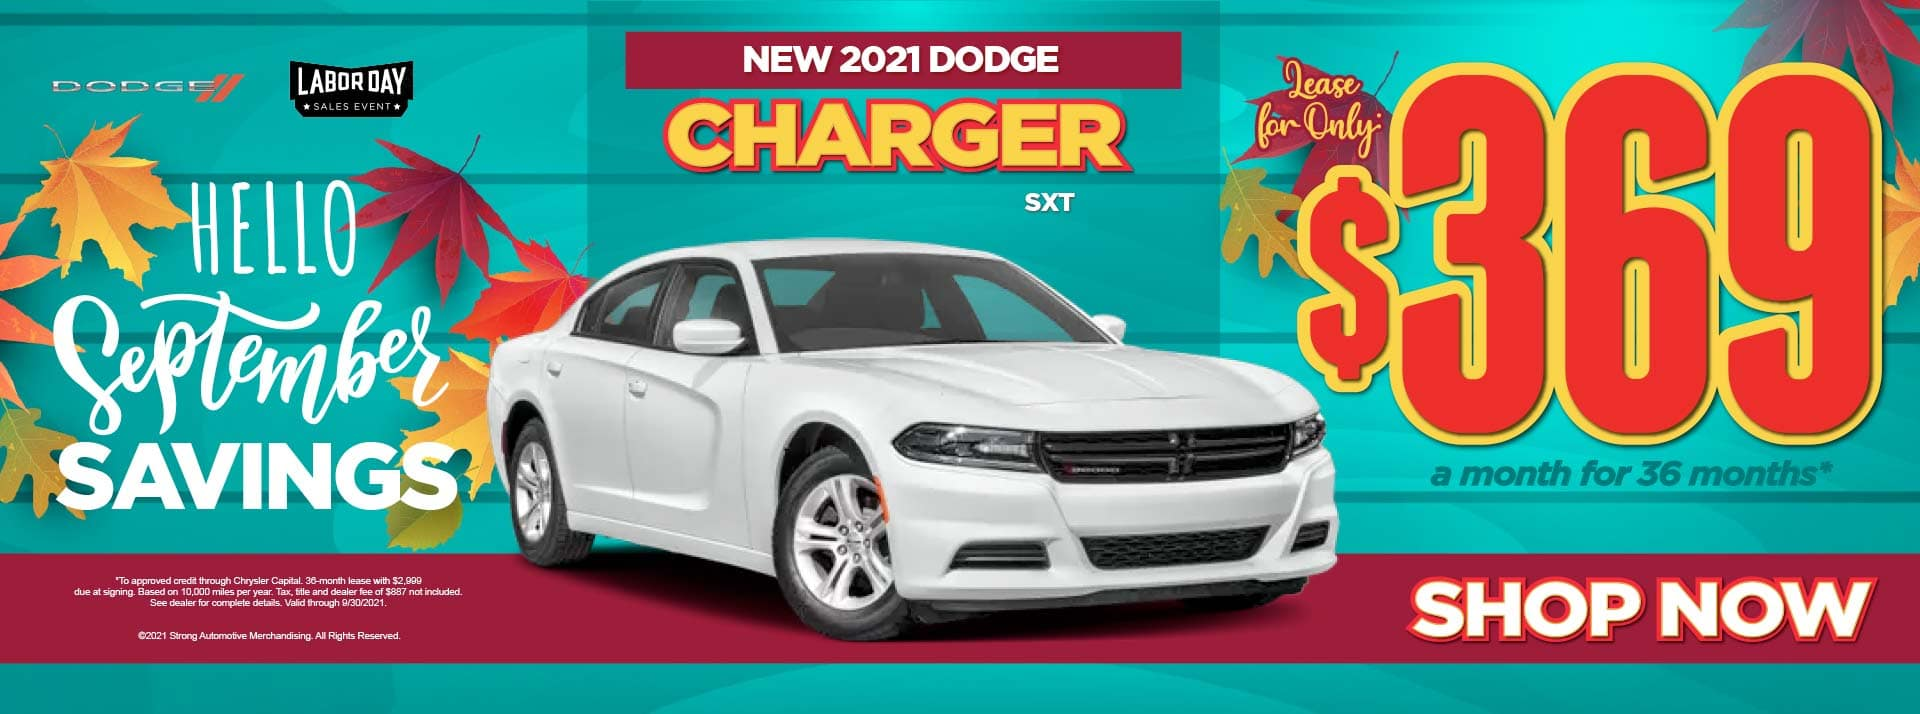 New 2021 Dodge Charger SXT - $369 / mo ACT NOW